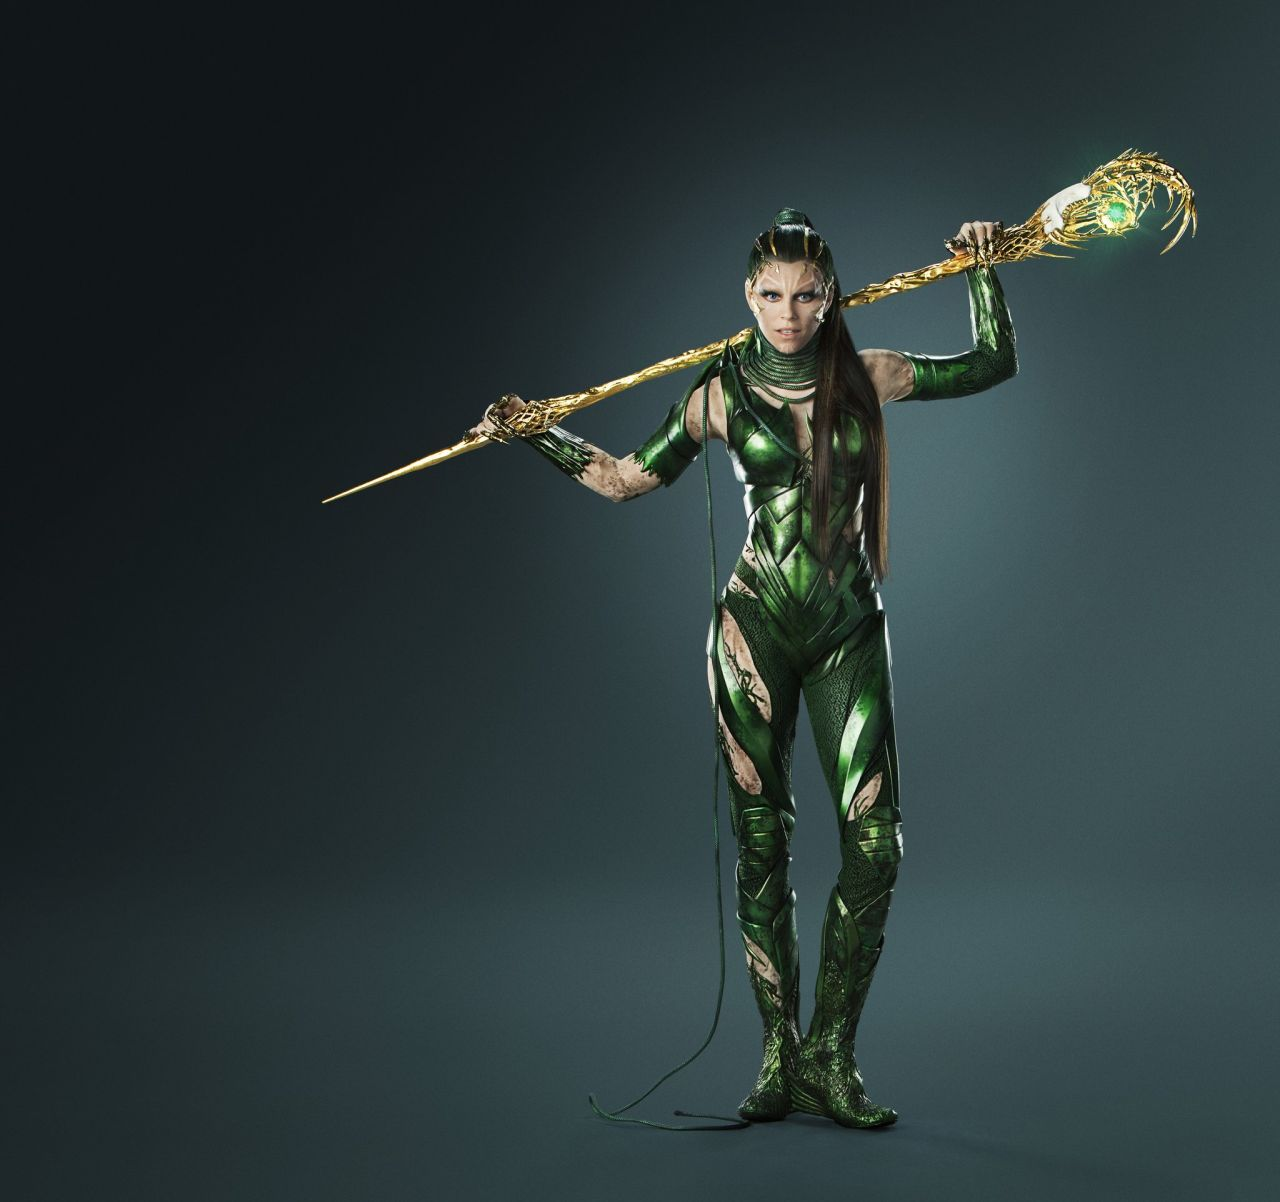 powerrangers-rita-repulsa-2